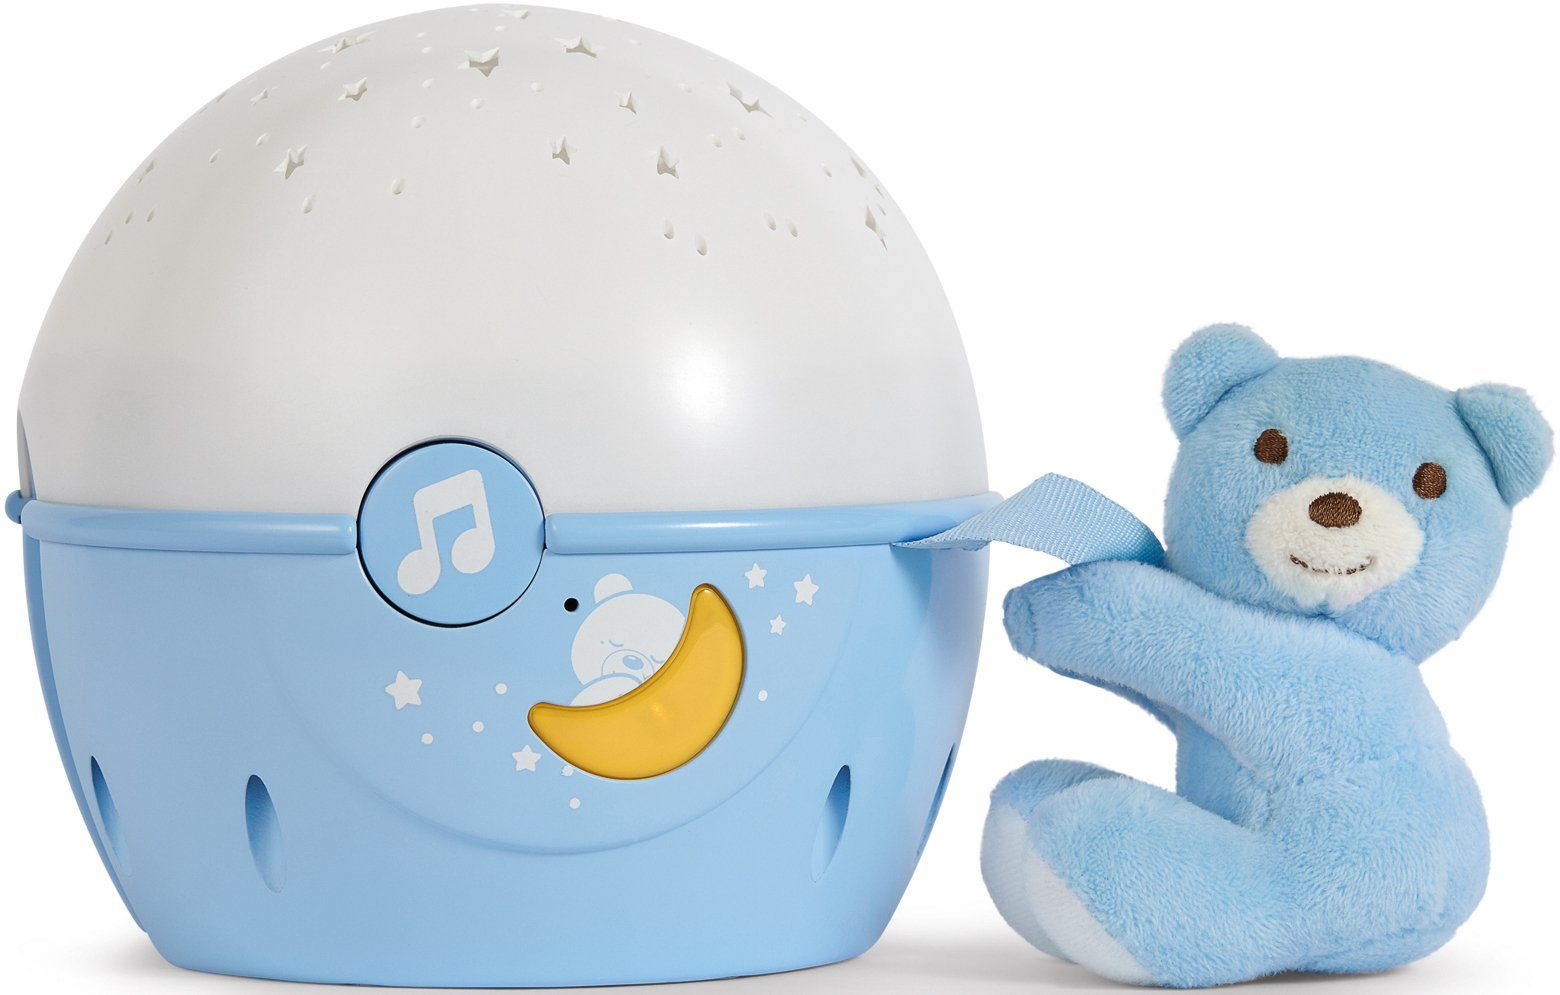 Chicco® 2in1 Projektor mit Soundfunktion, »First Dreams Next 2 Stars Nachtlicht, Hellblau«